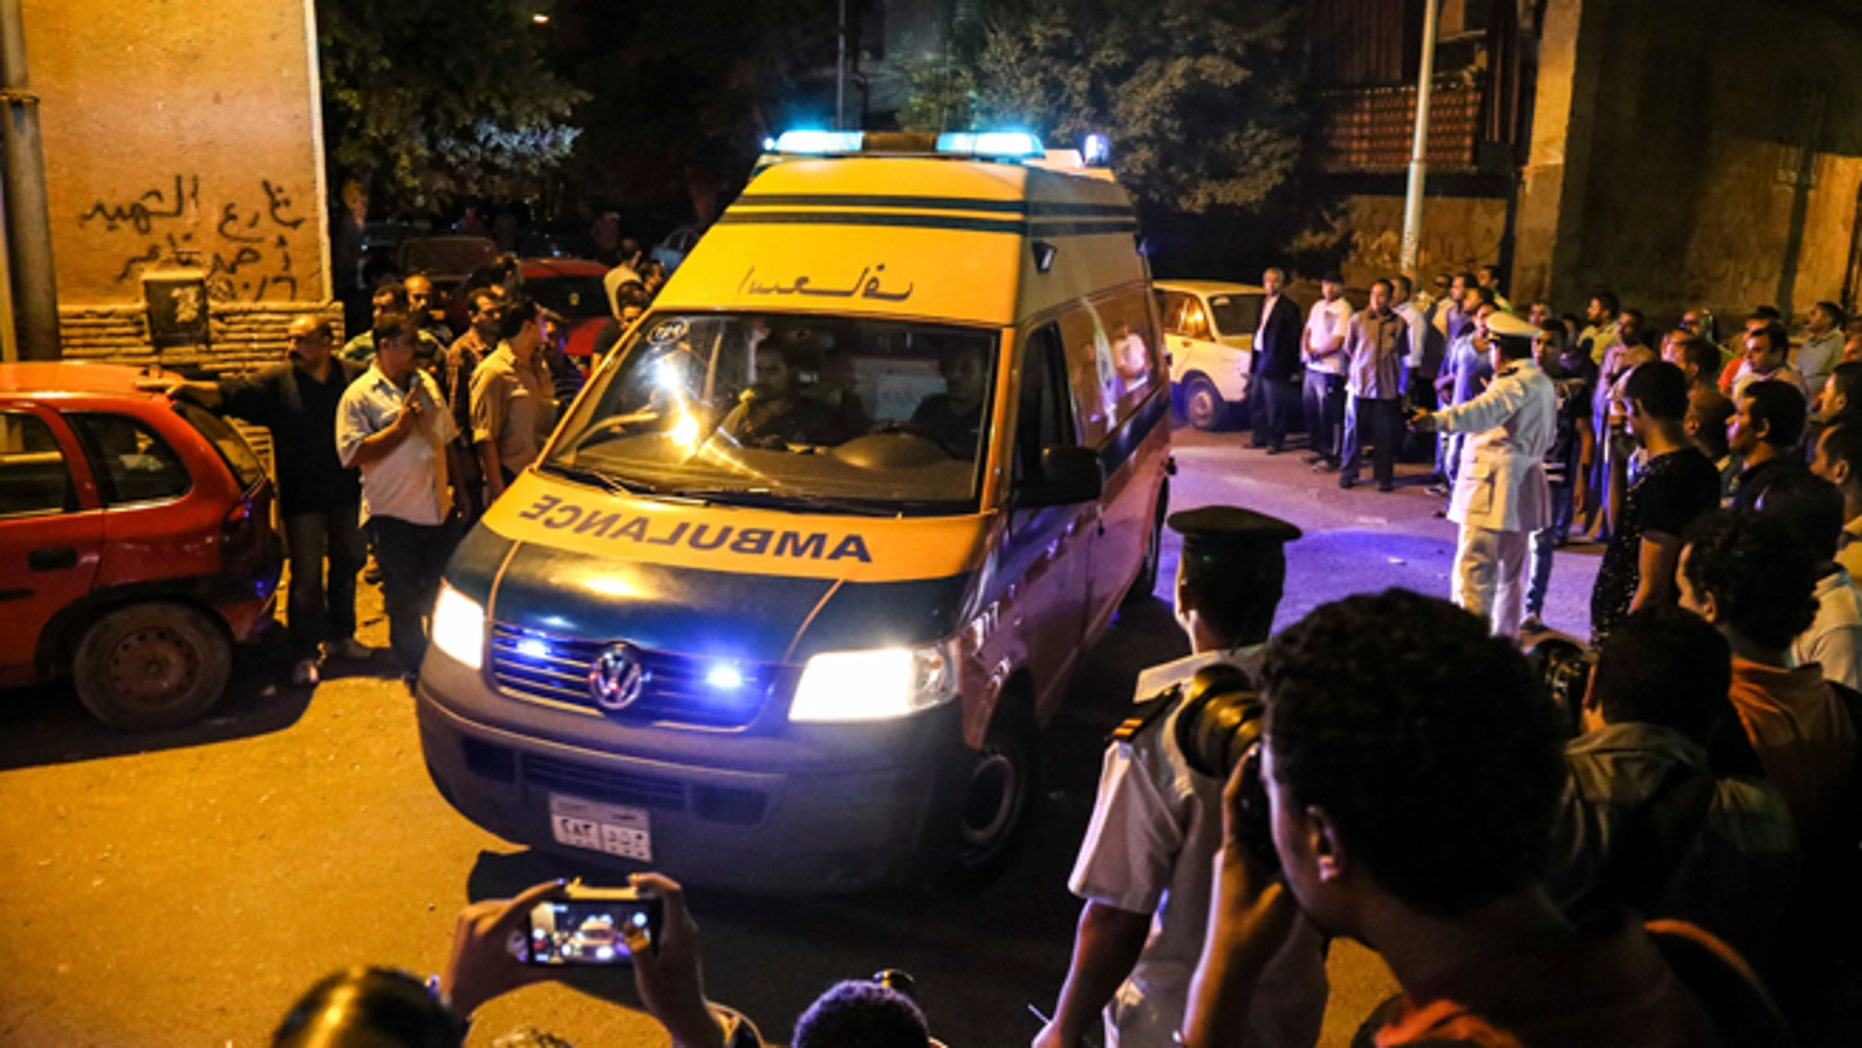 An ambulance carrying an Egyptian victim arrives at a morgue in Cairo, Egypt, Monday, Sept. 14, 2015.